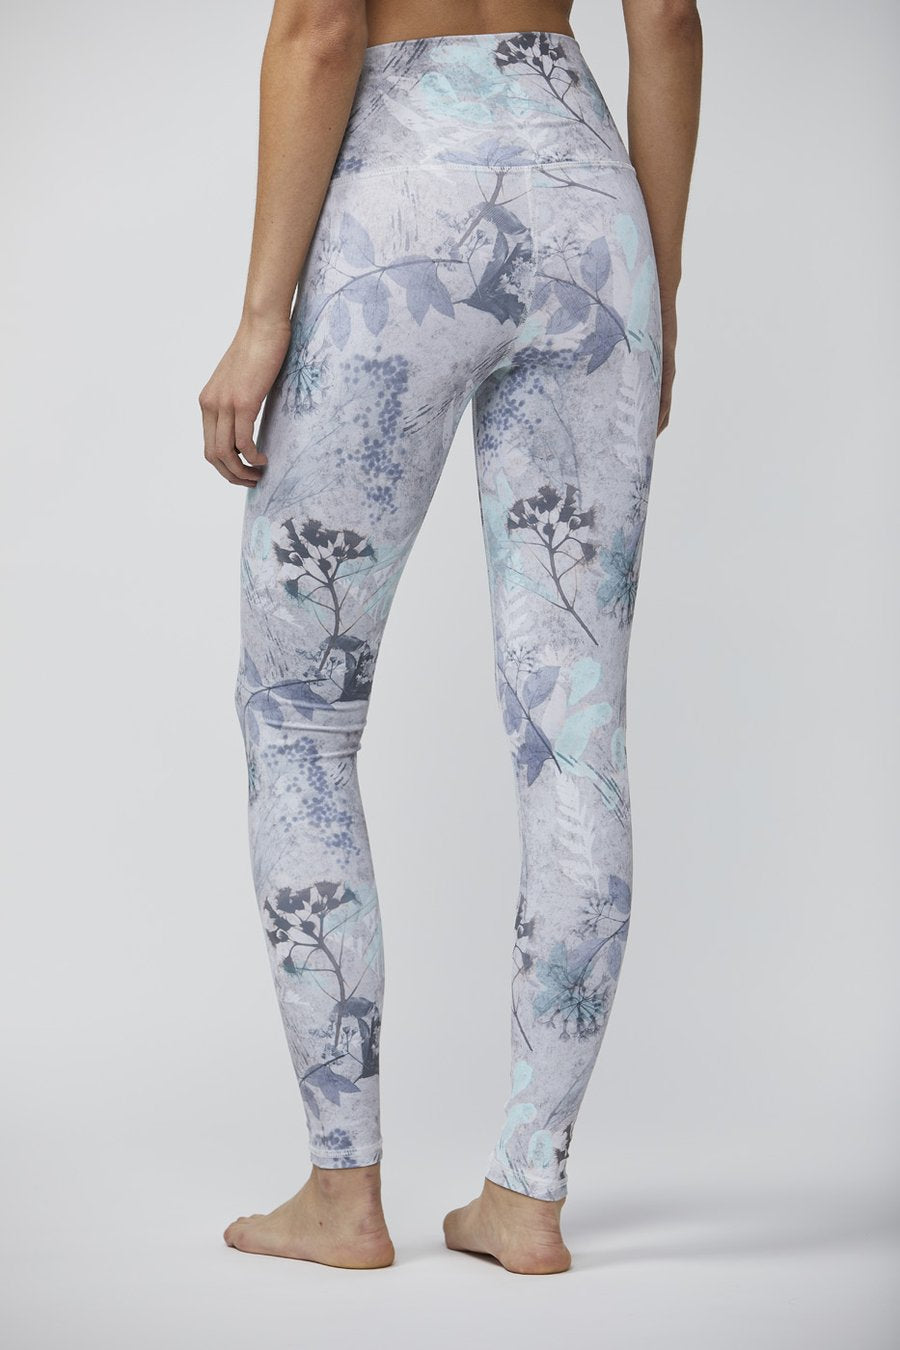 Signature Tight: X-Ray Floral